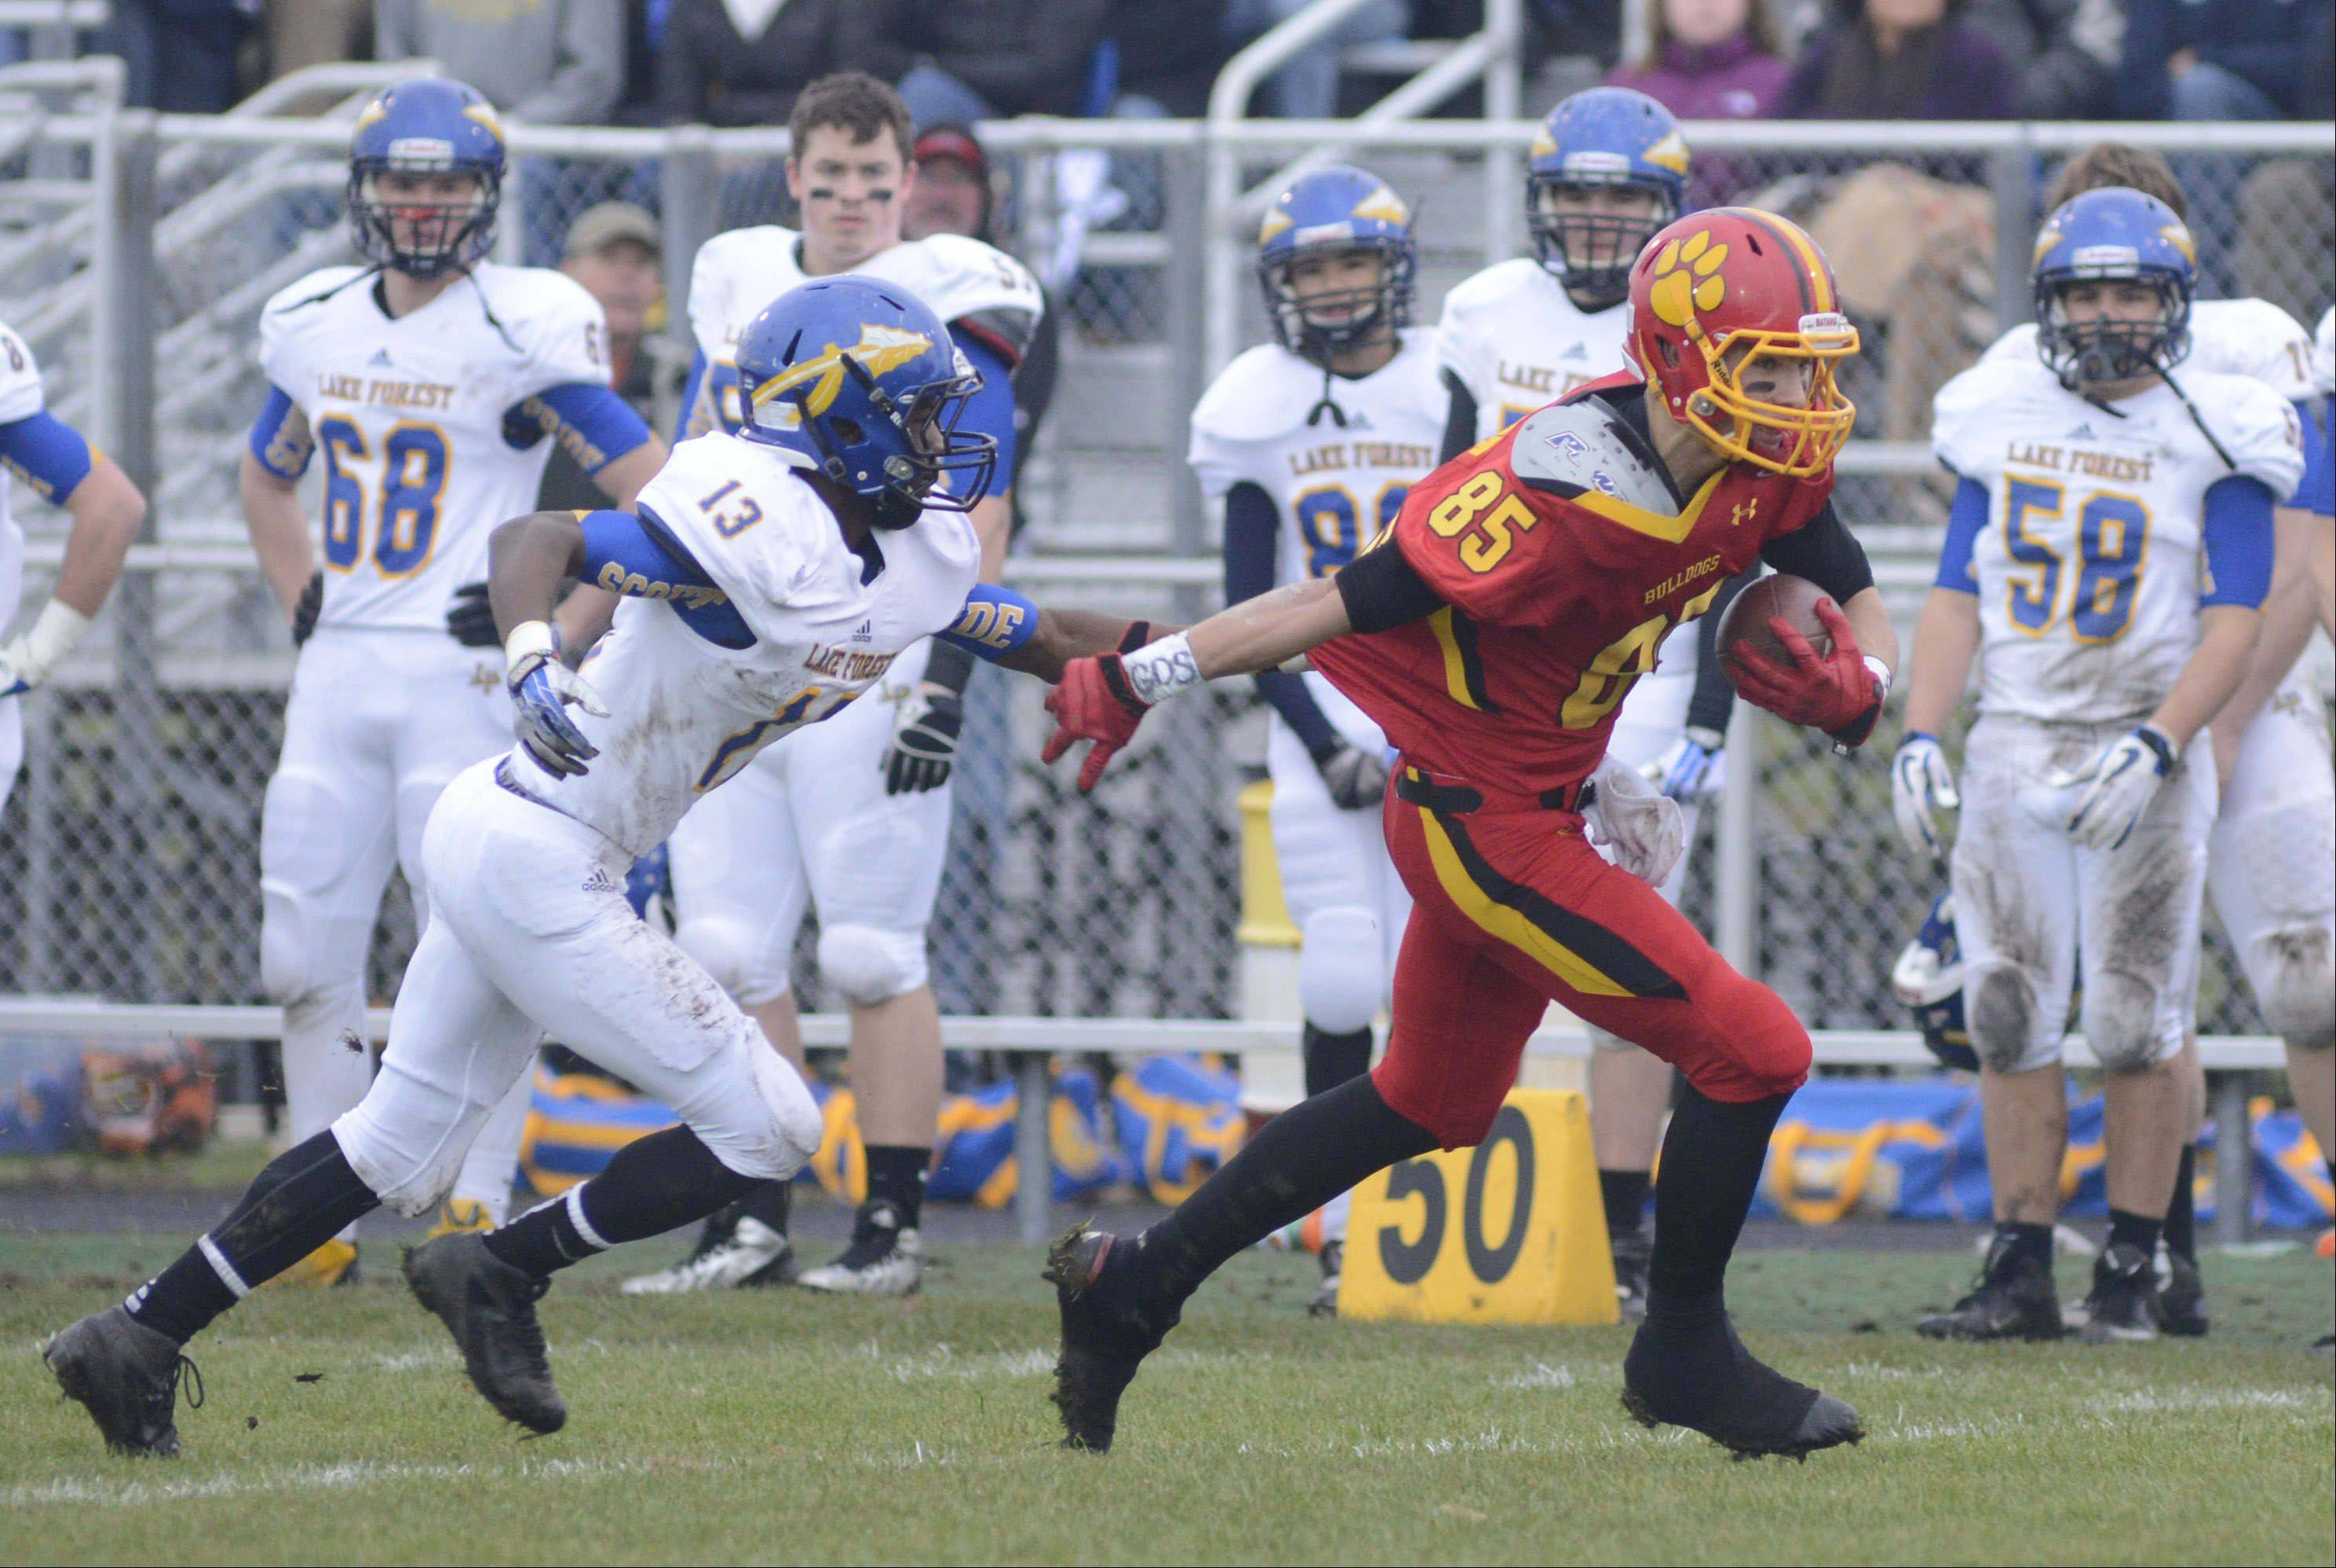 Playoffs- Quarterfinals � Photos from the Lake Forest vs. Batavia football playoff game on Saturday, Nov. 16.